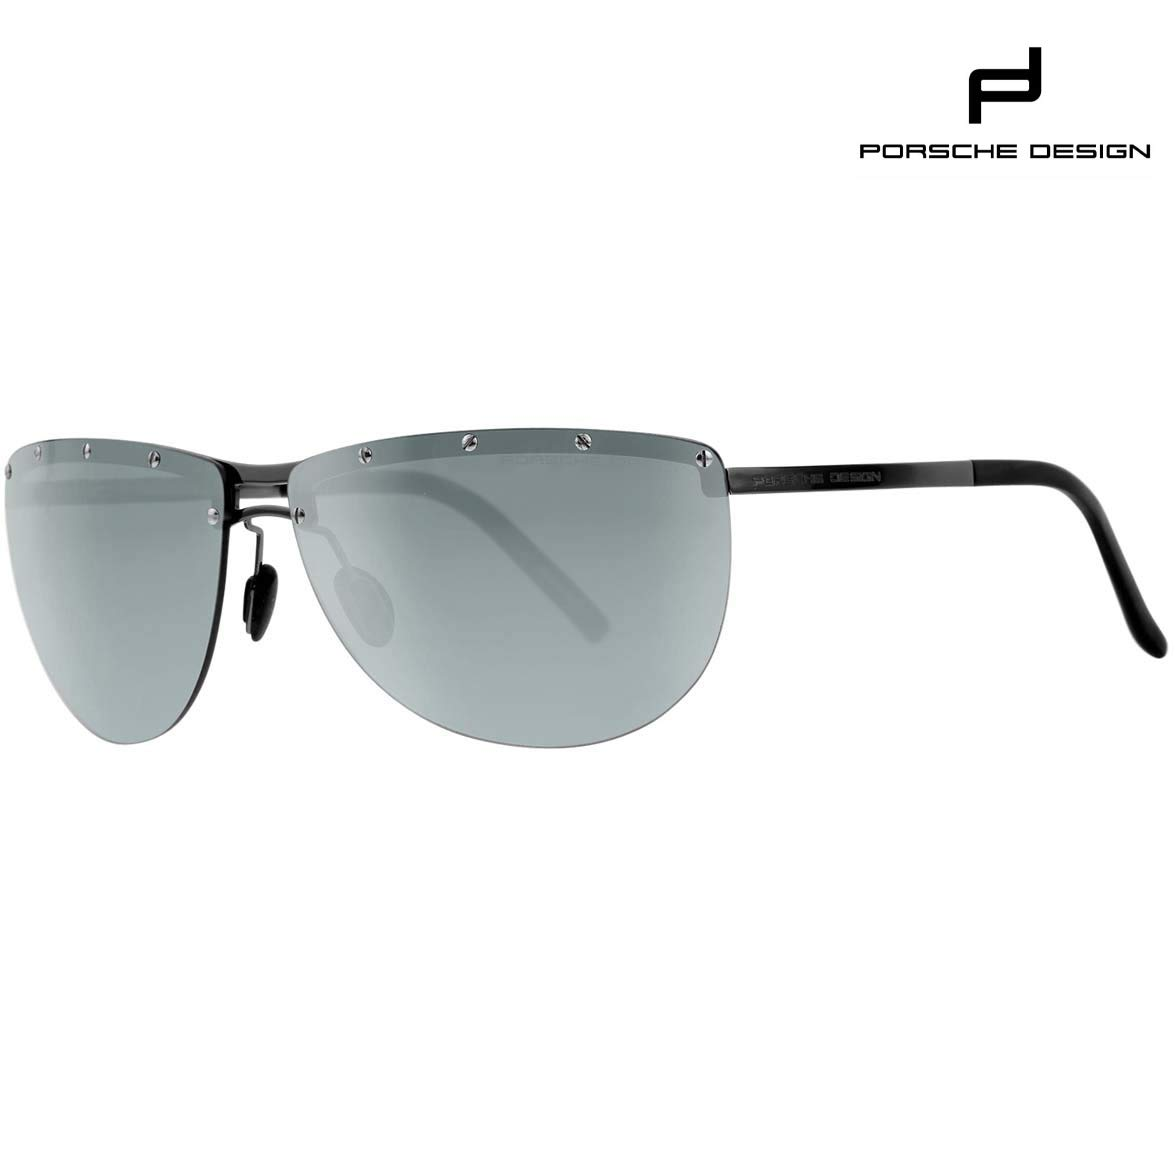 Porsche Design Sunglasses Black Unisex P8577 B